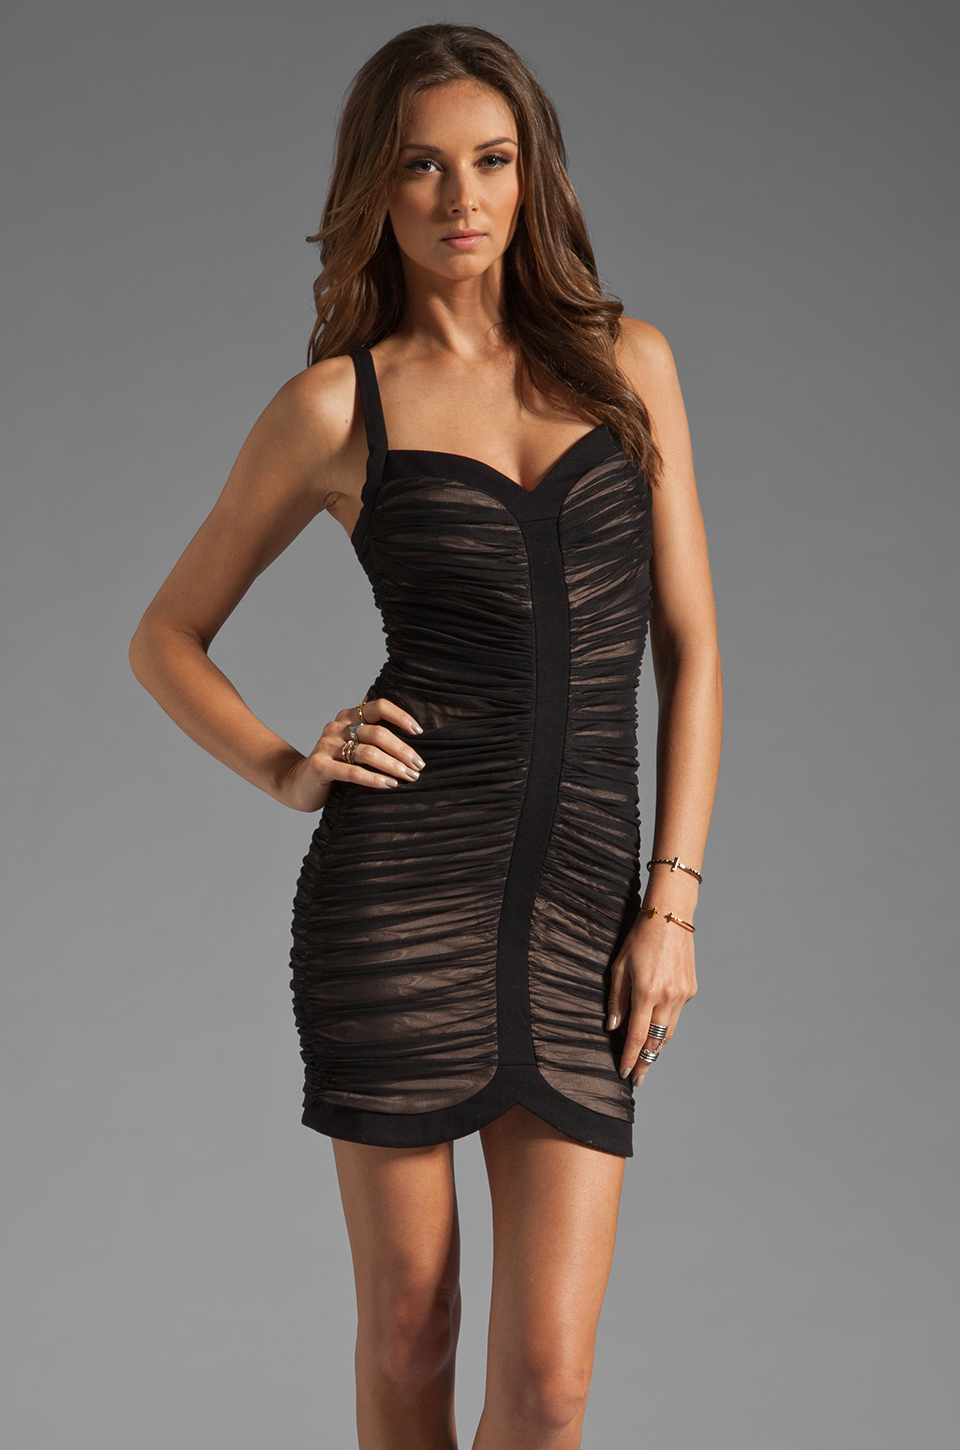 Bcbgmaxazria Mini Cocktail Dress in Black - Lyst